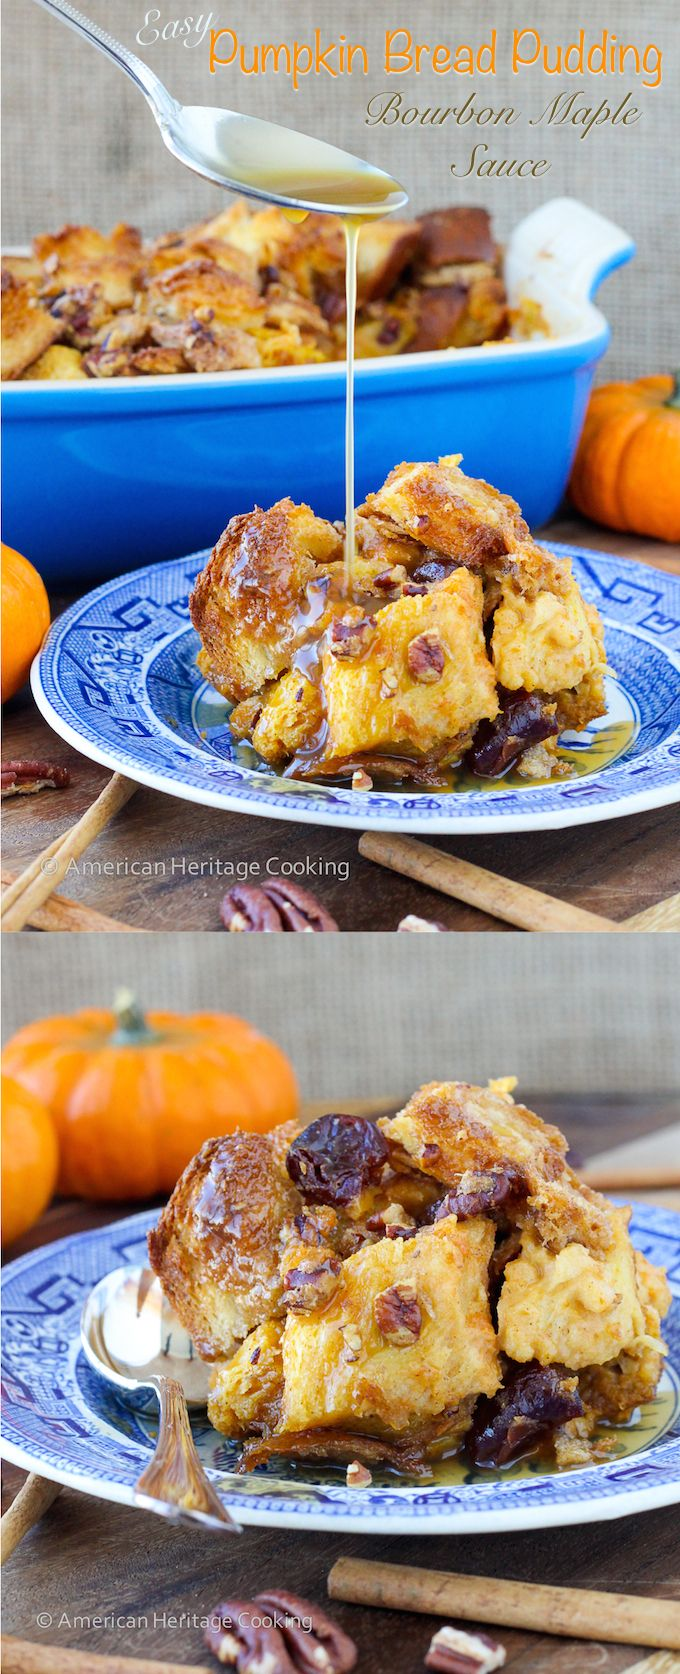 Easy Pumpkin Spice Bread Pudding with Maple Bourbon Cream Sauce  Yummy for Thanksgiving?